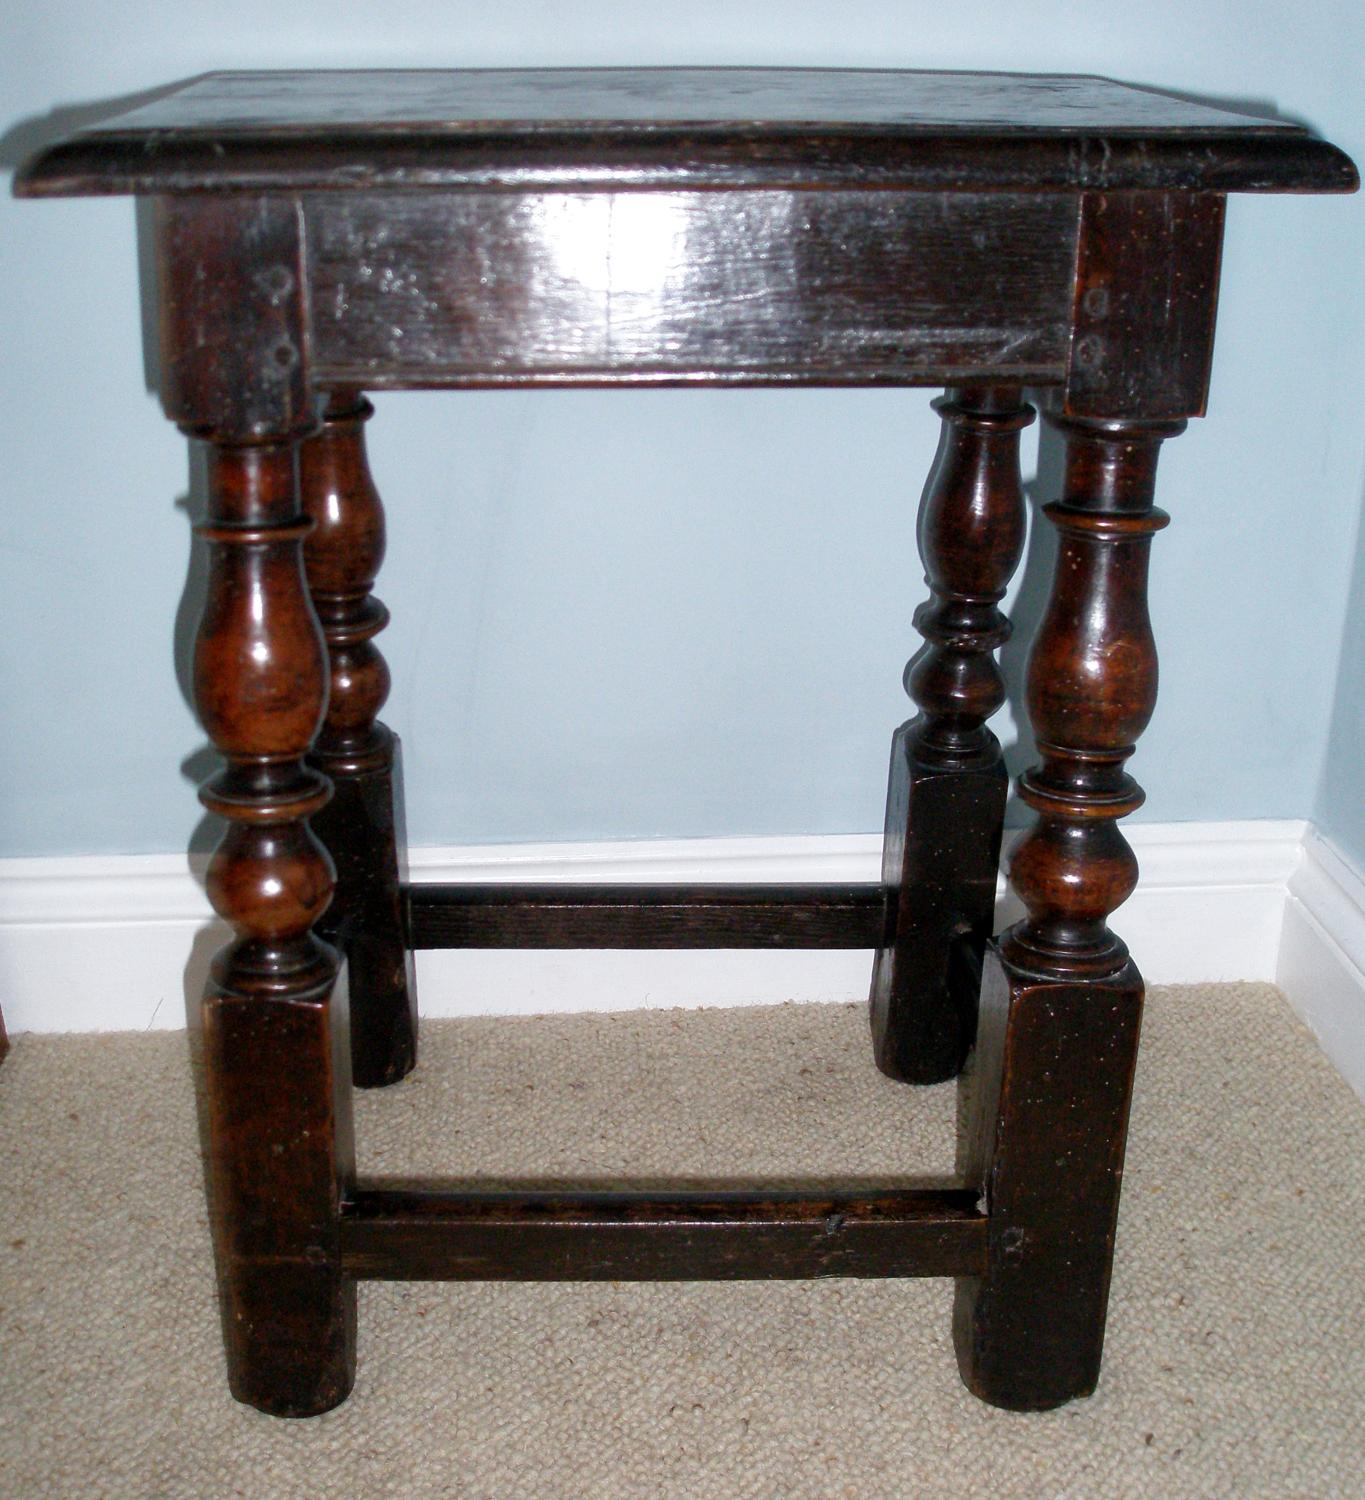 Later 17th century English oak joined stool